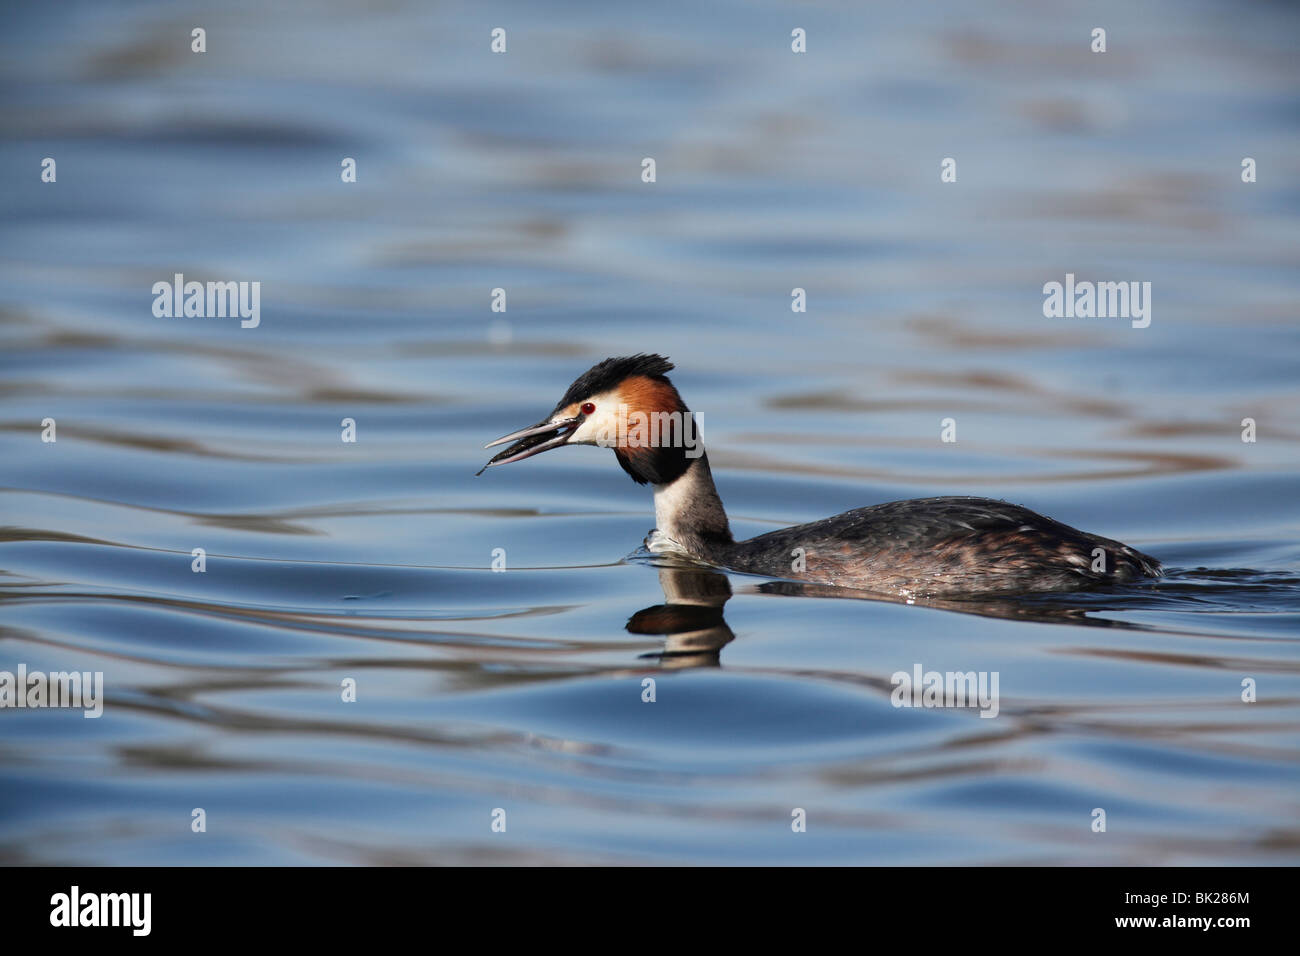 Great crested grebe (Podiceps chritatus) with stickleback - Stock Image